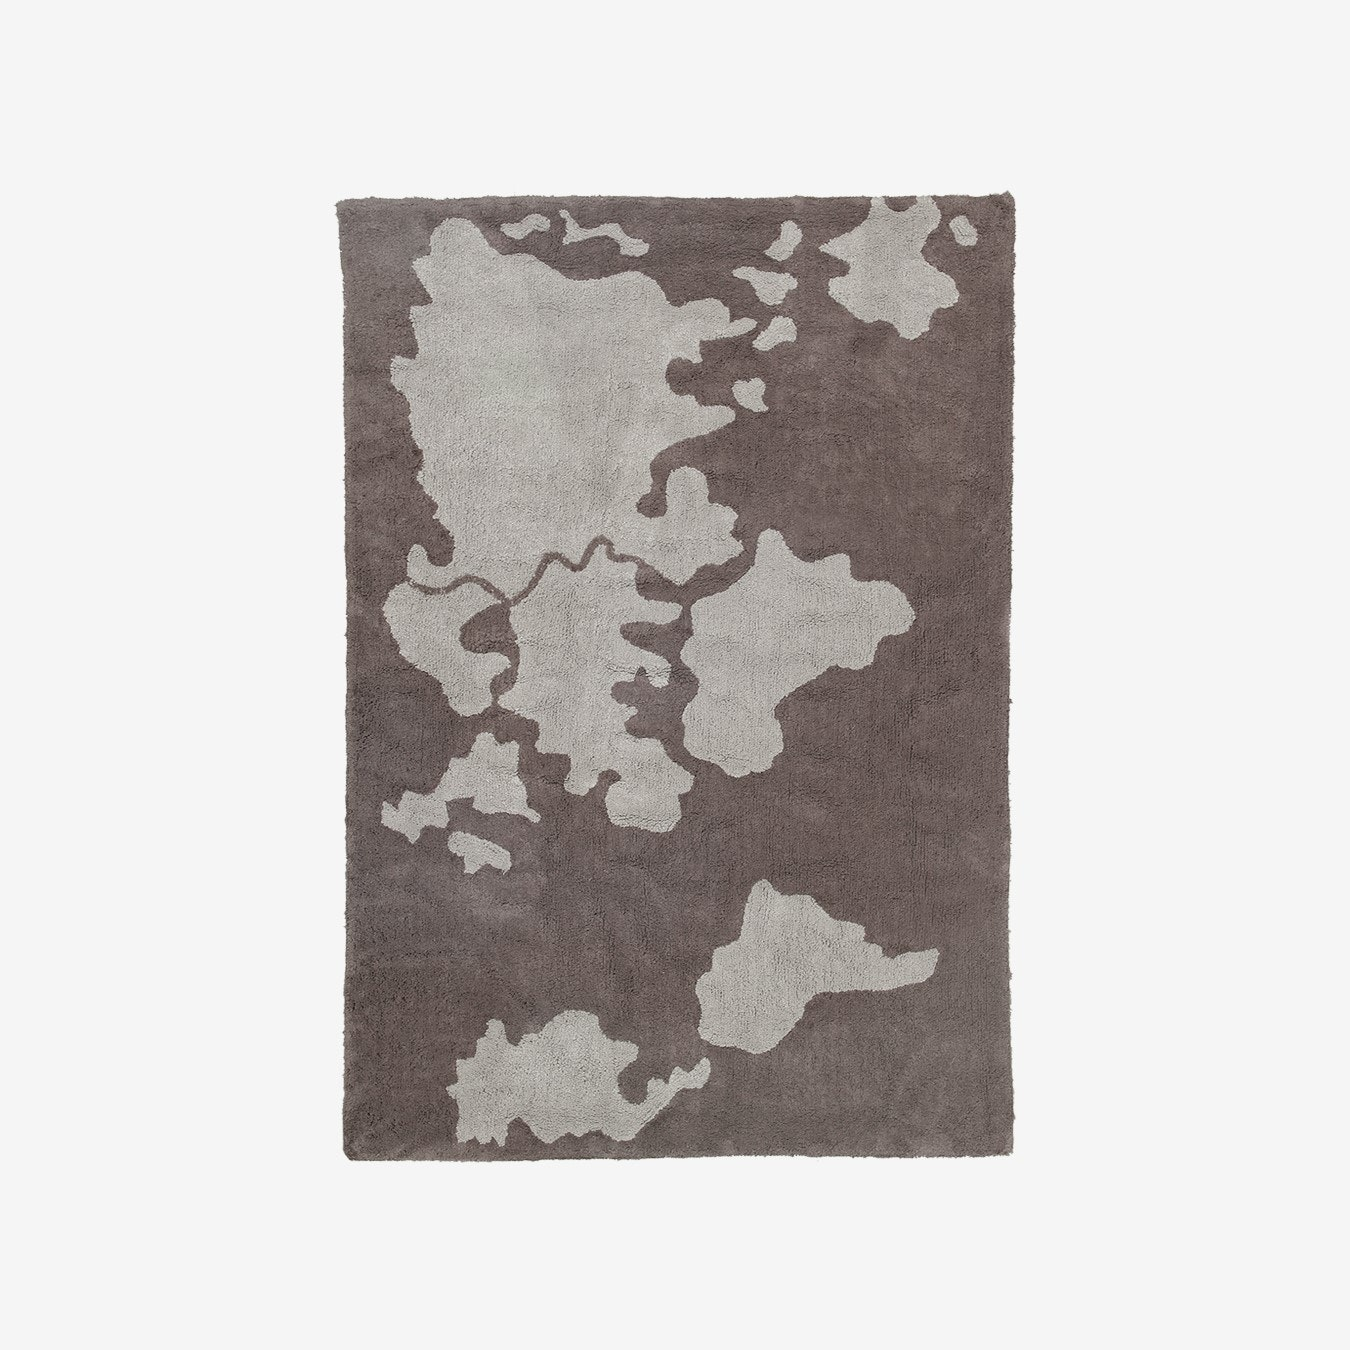 Lorena Canals World Map Rug